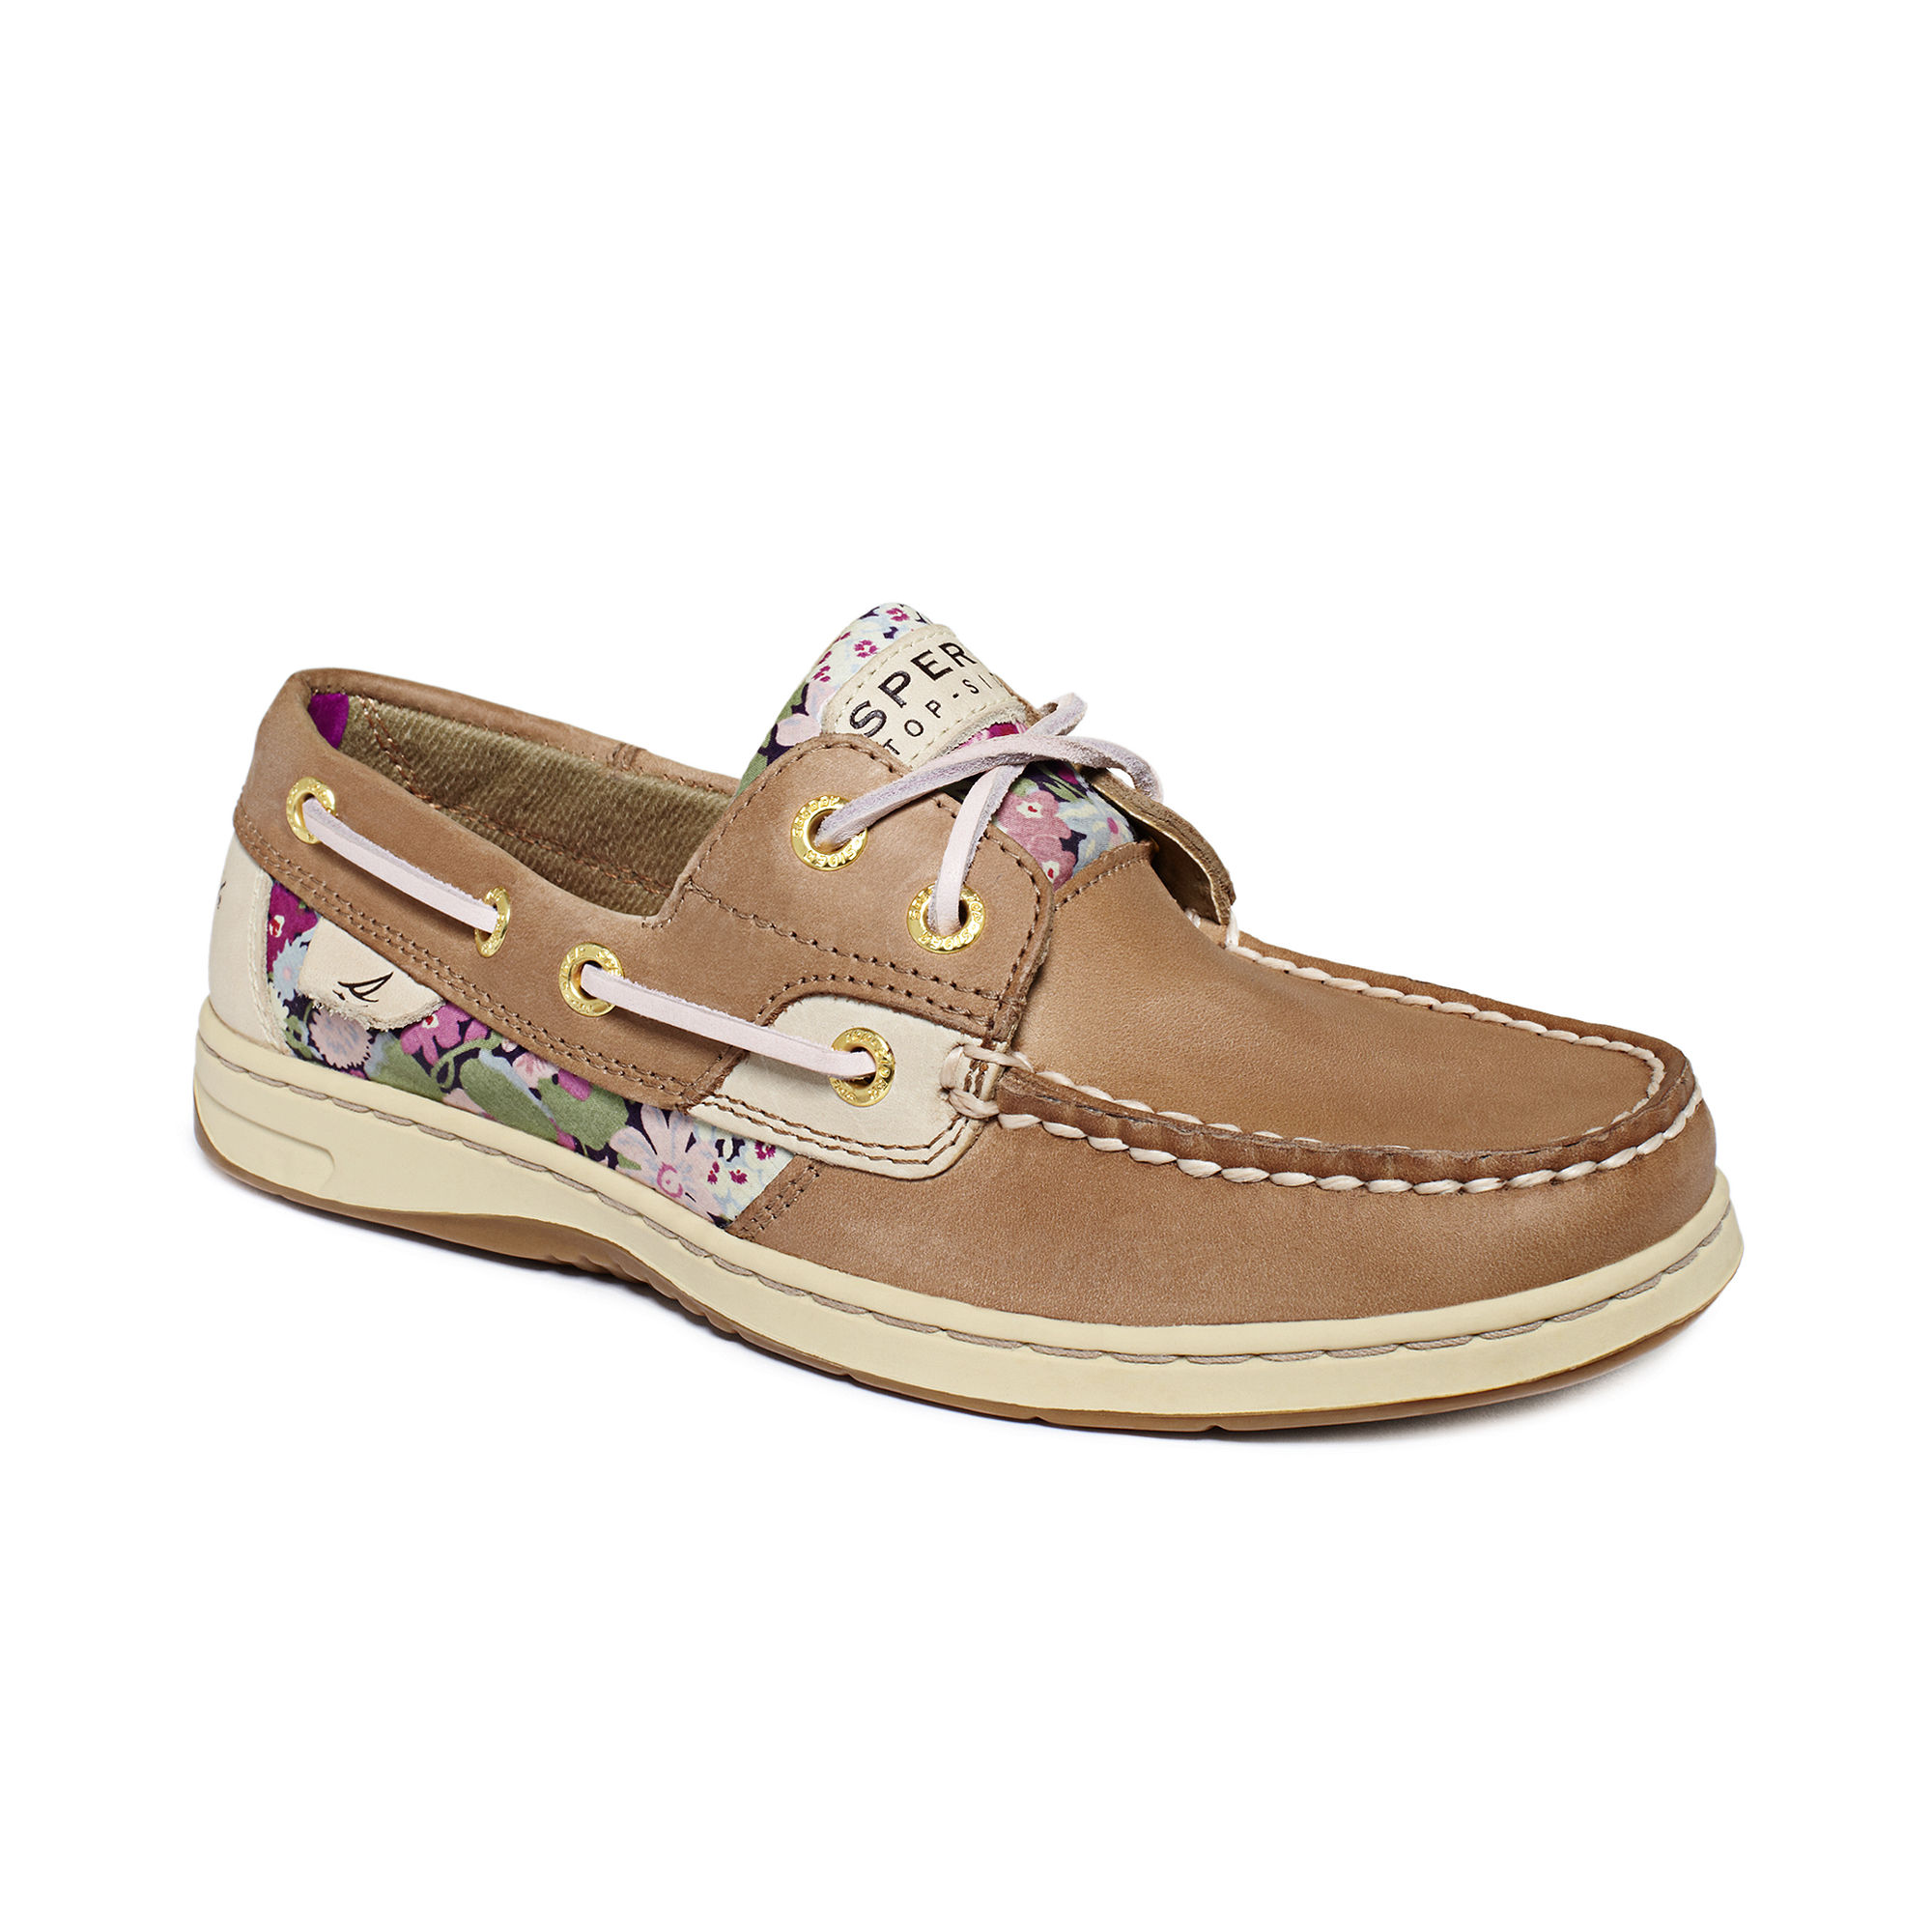 Womens Pink Sperry Shoes